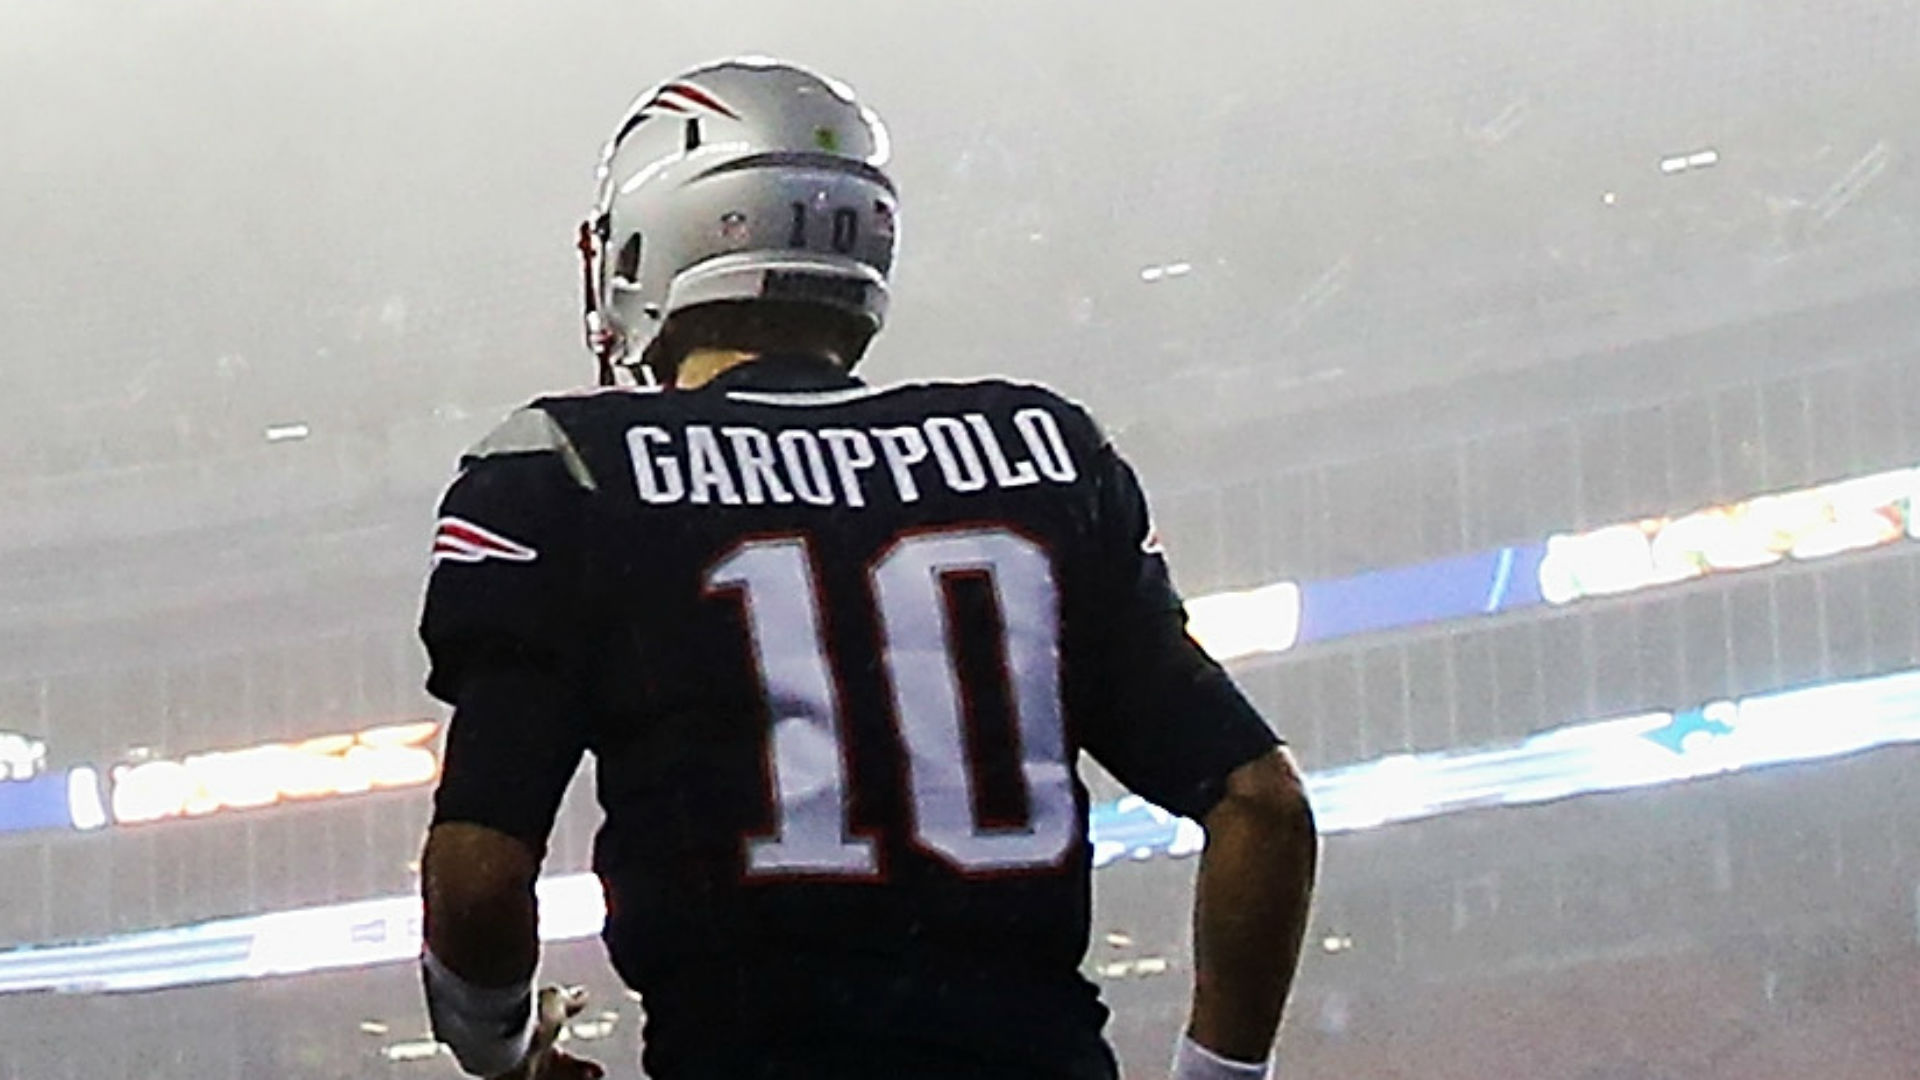 The Browns are still trying to trade for Jimmy Garoppolo